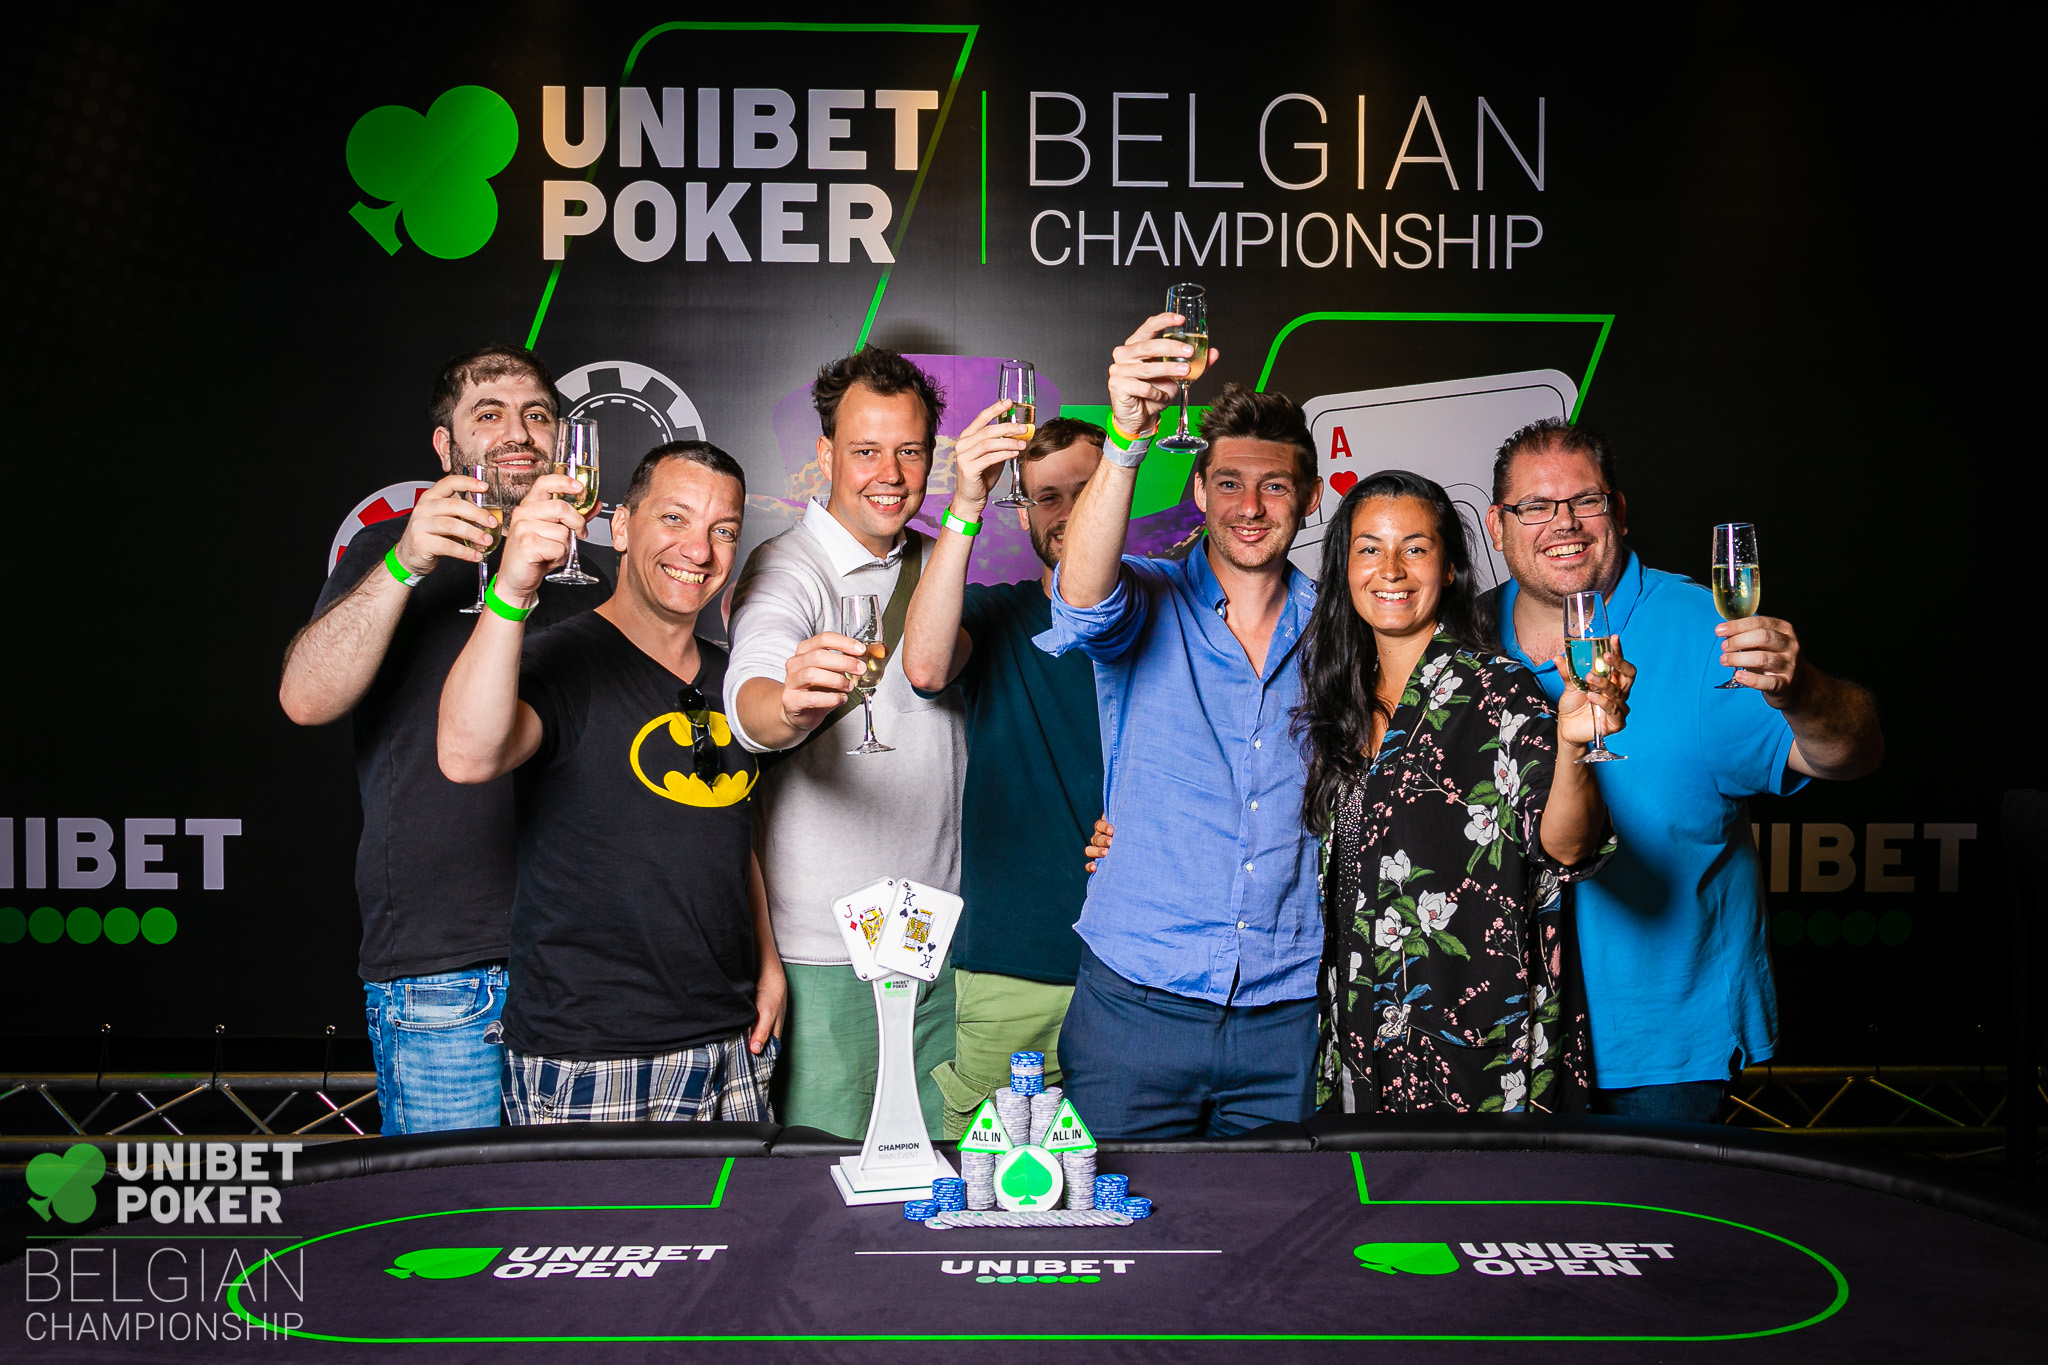 Unibet Poker Belgian Championship 2019 - Main Event (Final Day) 062 ((C) Tambet Kask 2019)